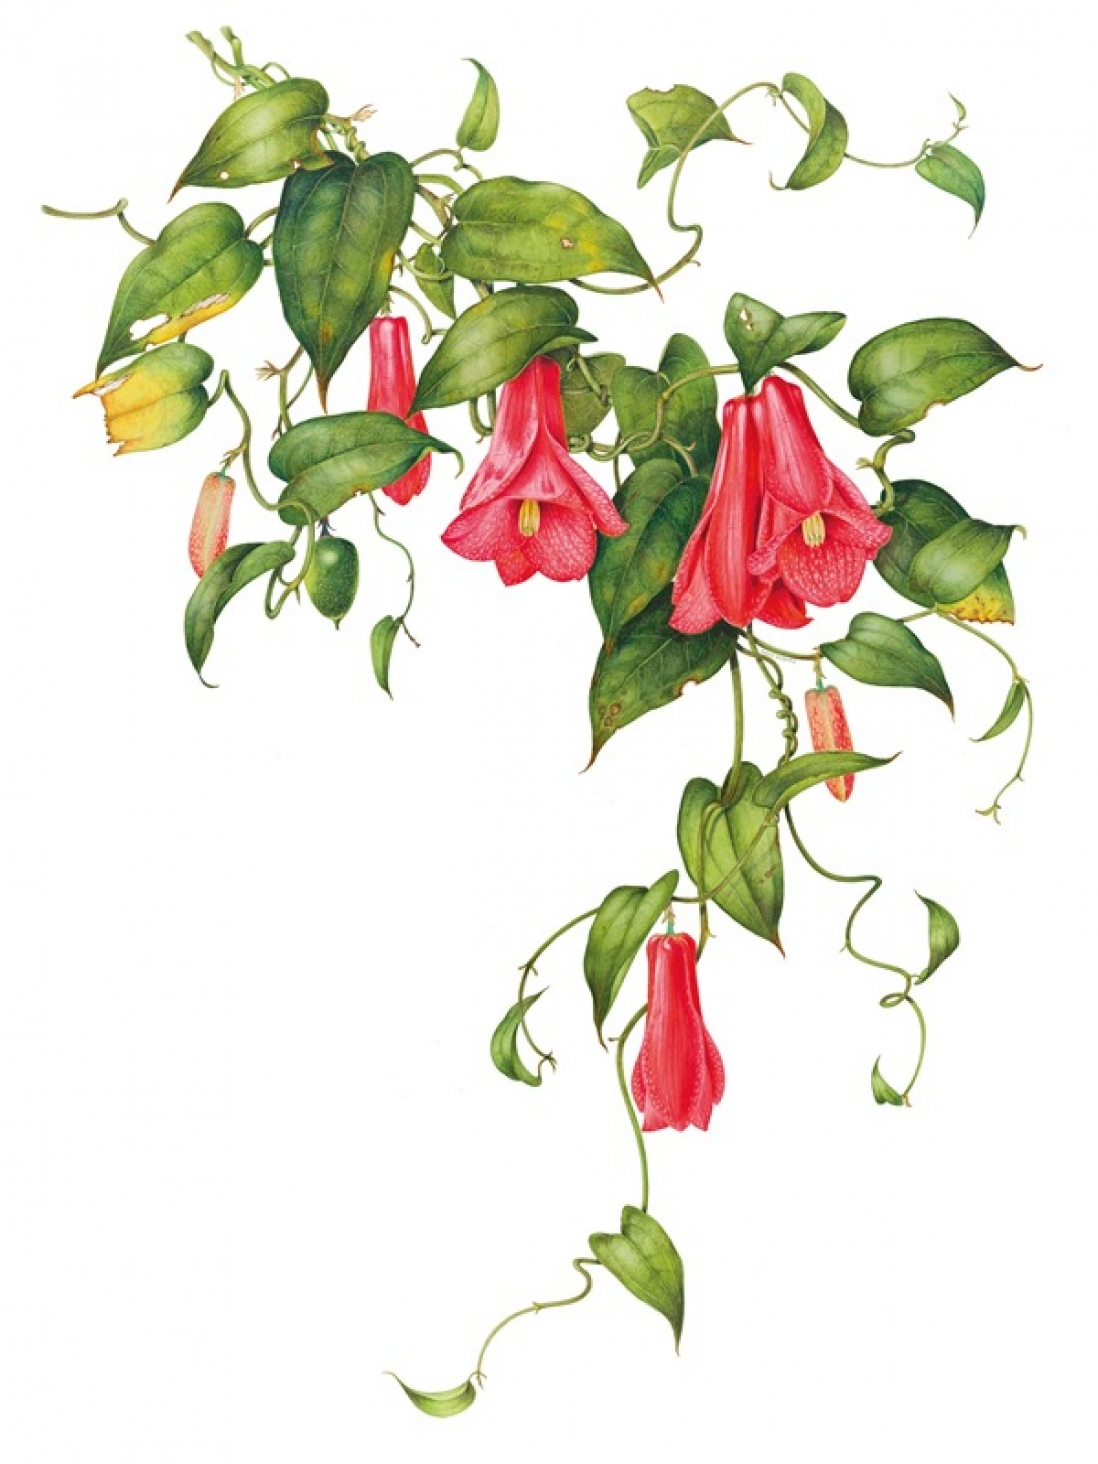 Botanic illustration of Lapageria rosea